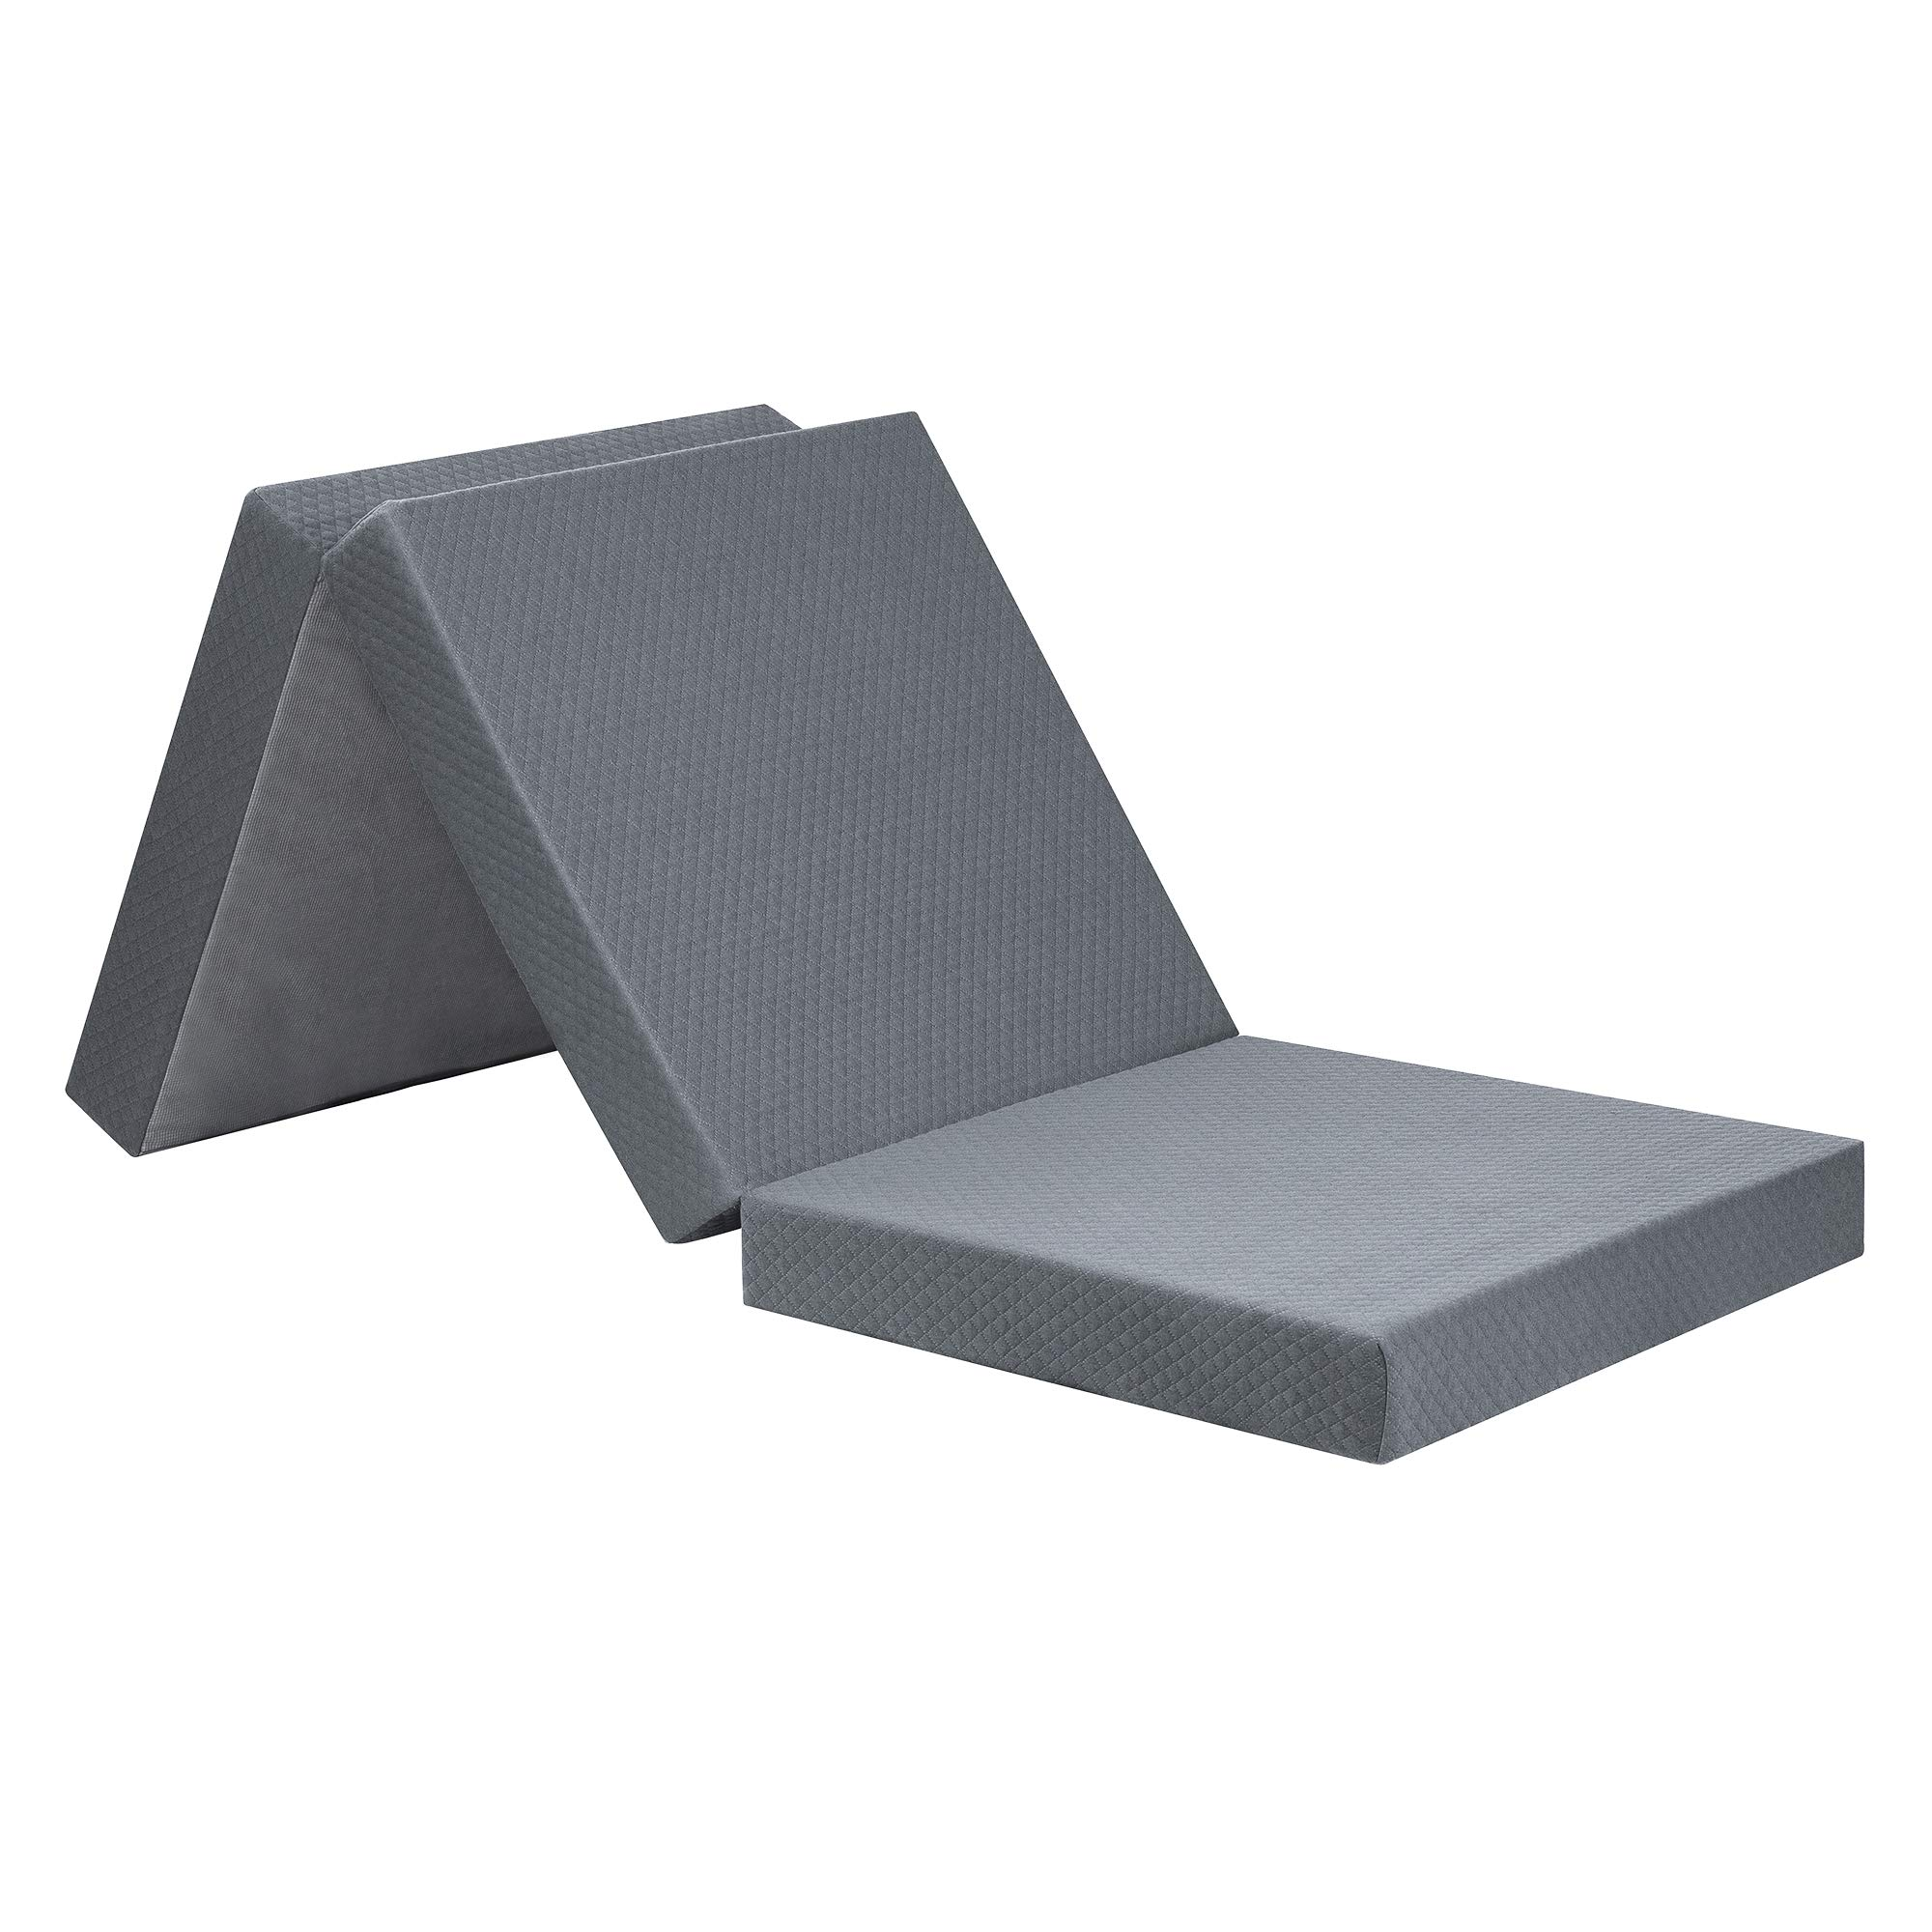 """Olee Sleep Tri-Folding Memory Foam Topper, 4"""", Gray, Single size, Play Mat, Foldable bed, Guest beds, Portable bed"""